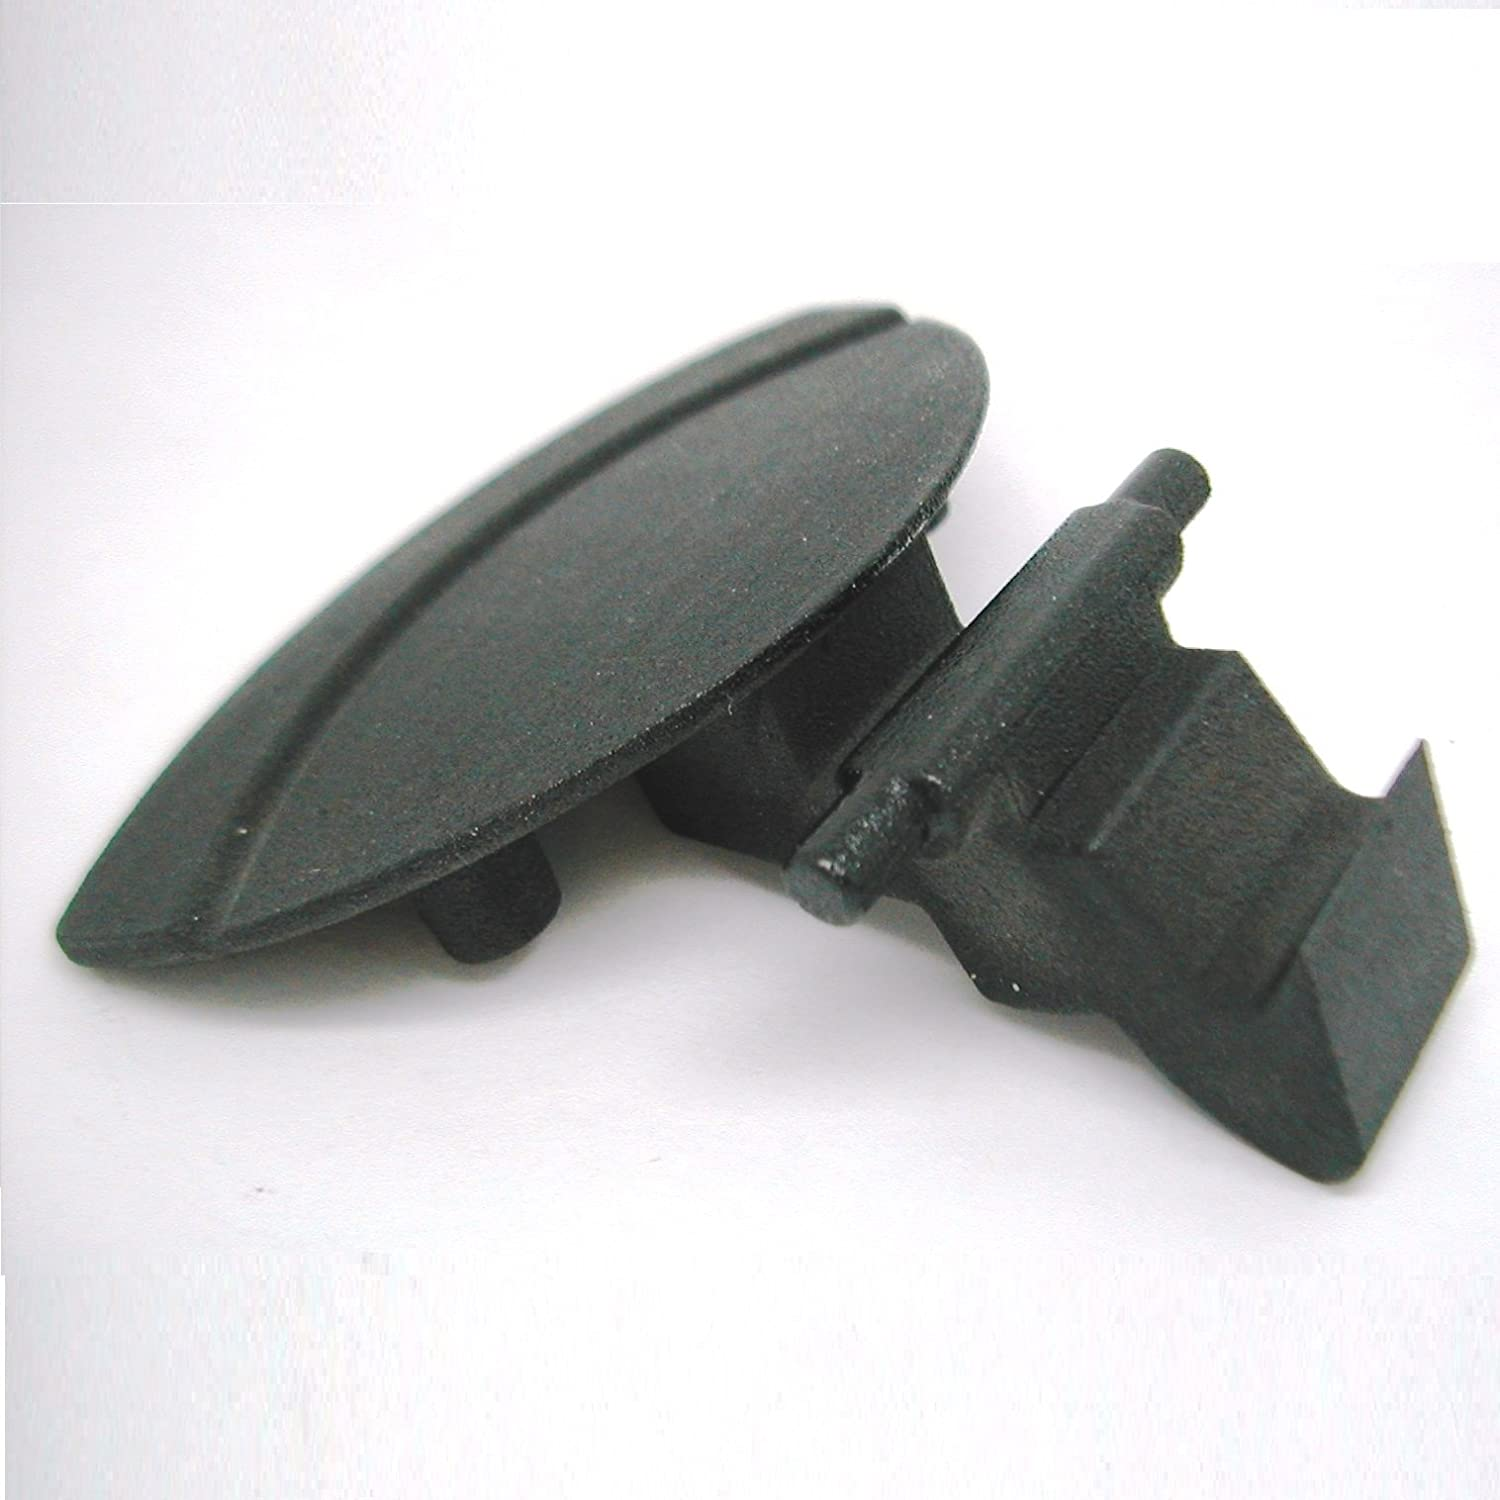 QDI Replacement Glove Box handle for Citroen C4